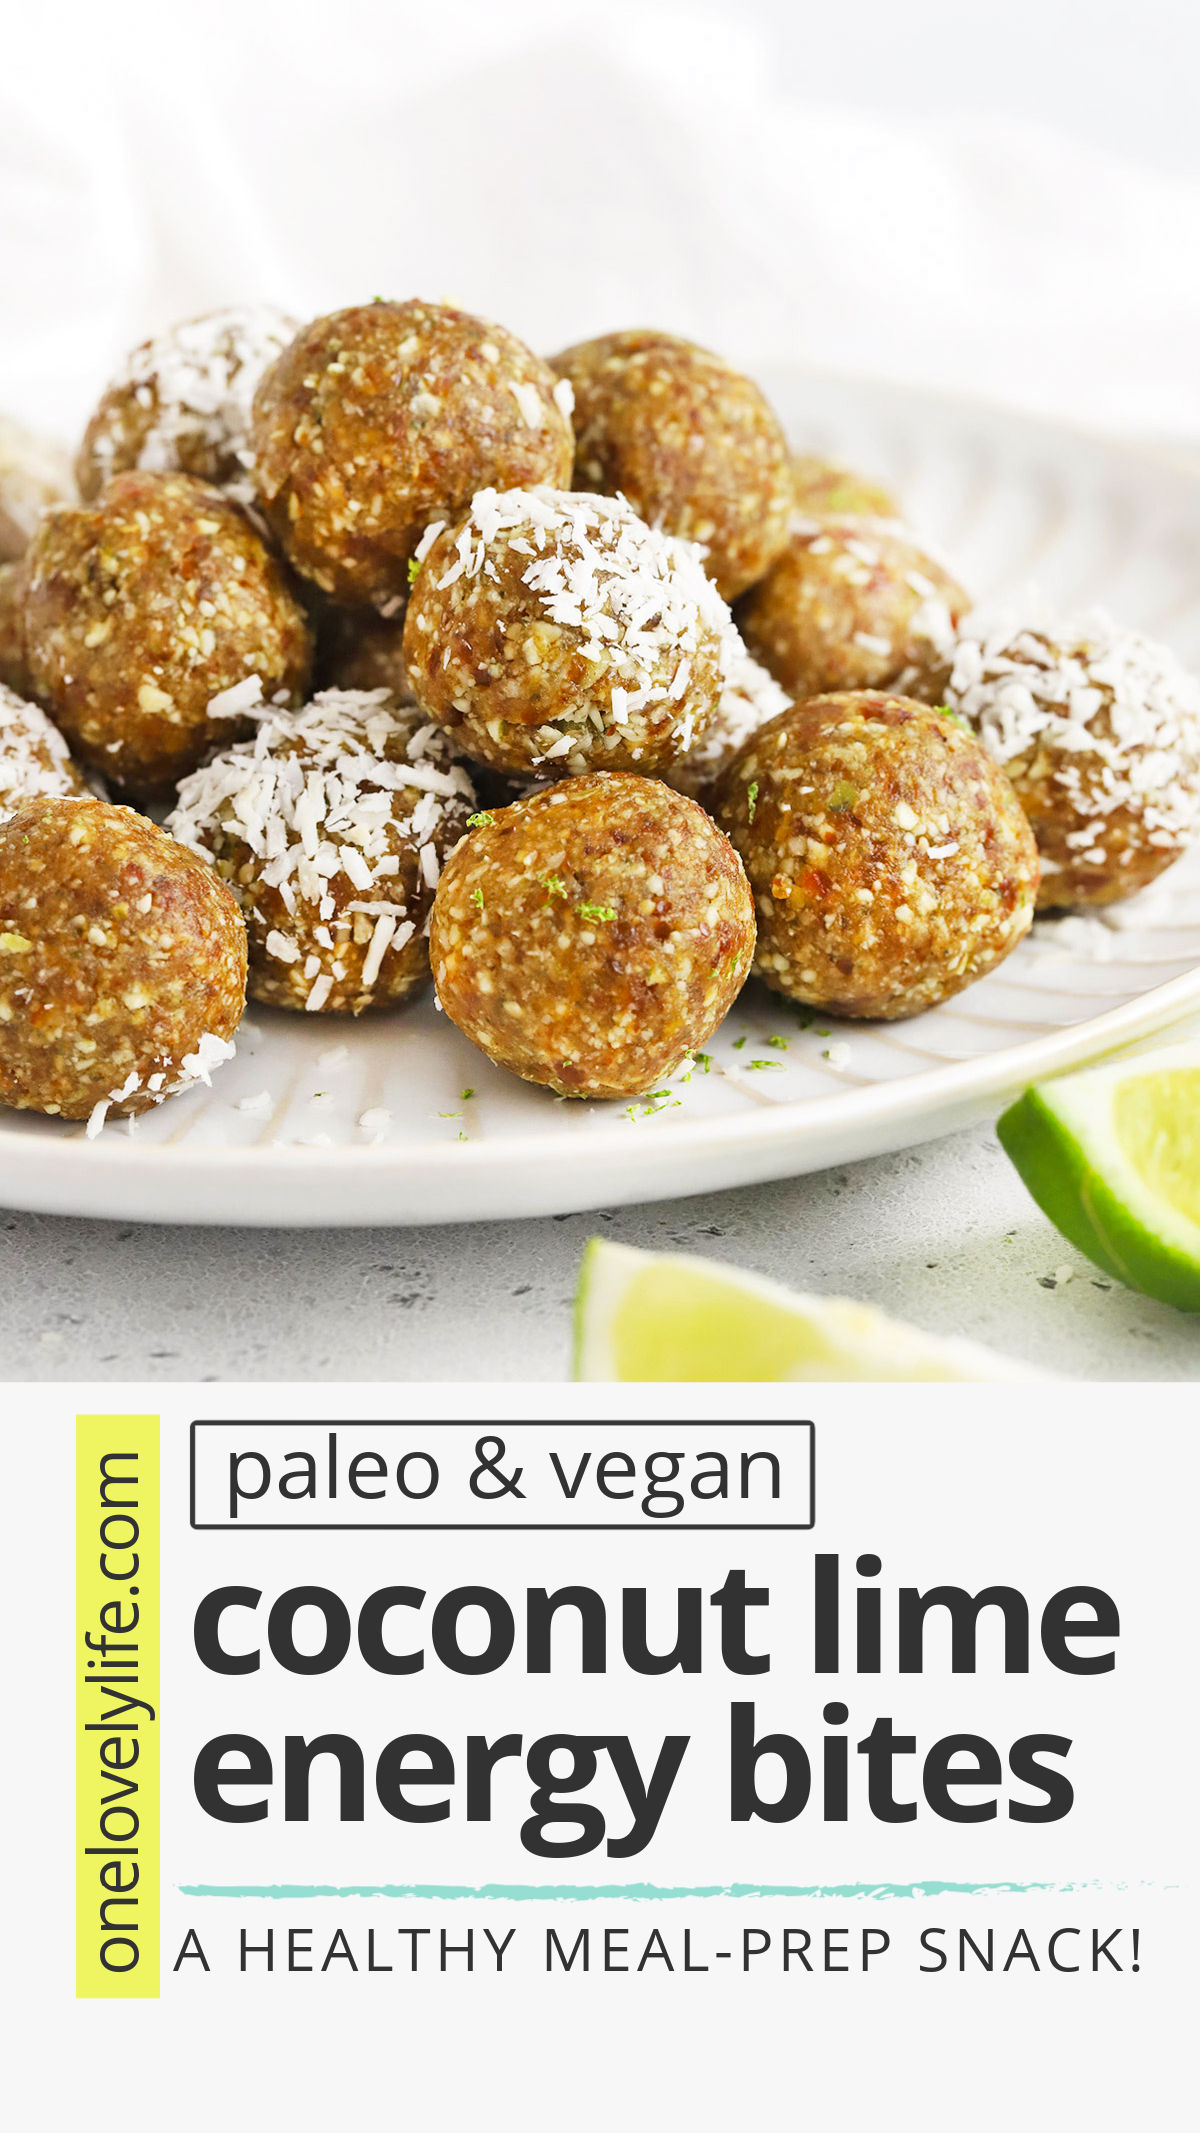 Coconut Lime Energy Bites - These nut-free lime energy bites are perfect for meal prep, healthy snacking, or packing in lunches. (Gluten free, vegan, and paleo approved!) // Nut Free snack // Nut free lunch idea // Nut free energy bites // #paleo #vegan #nutfree #energybites #energyballs